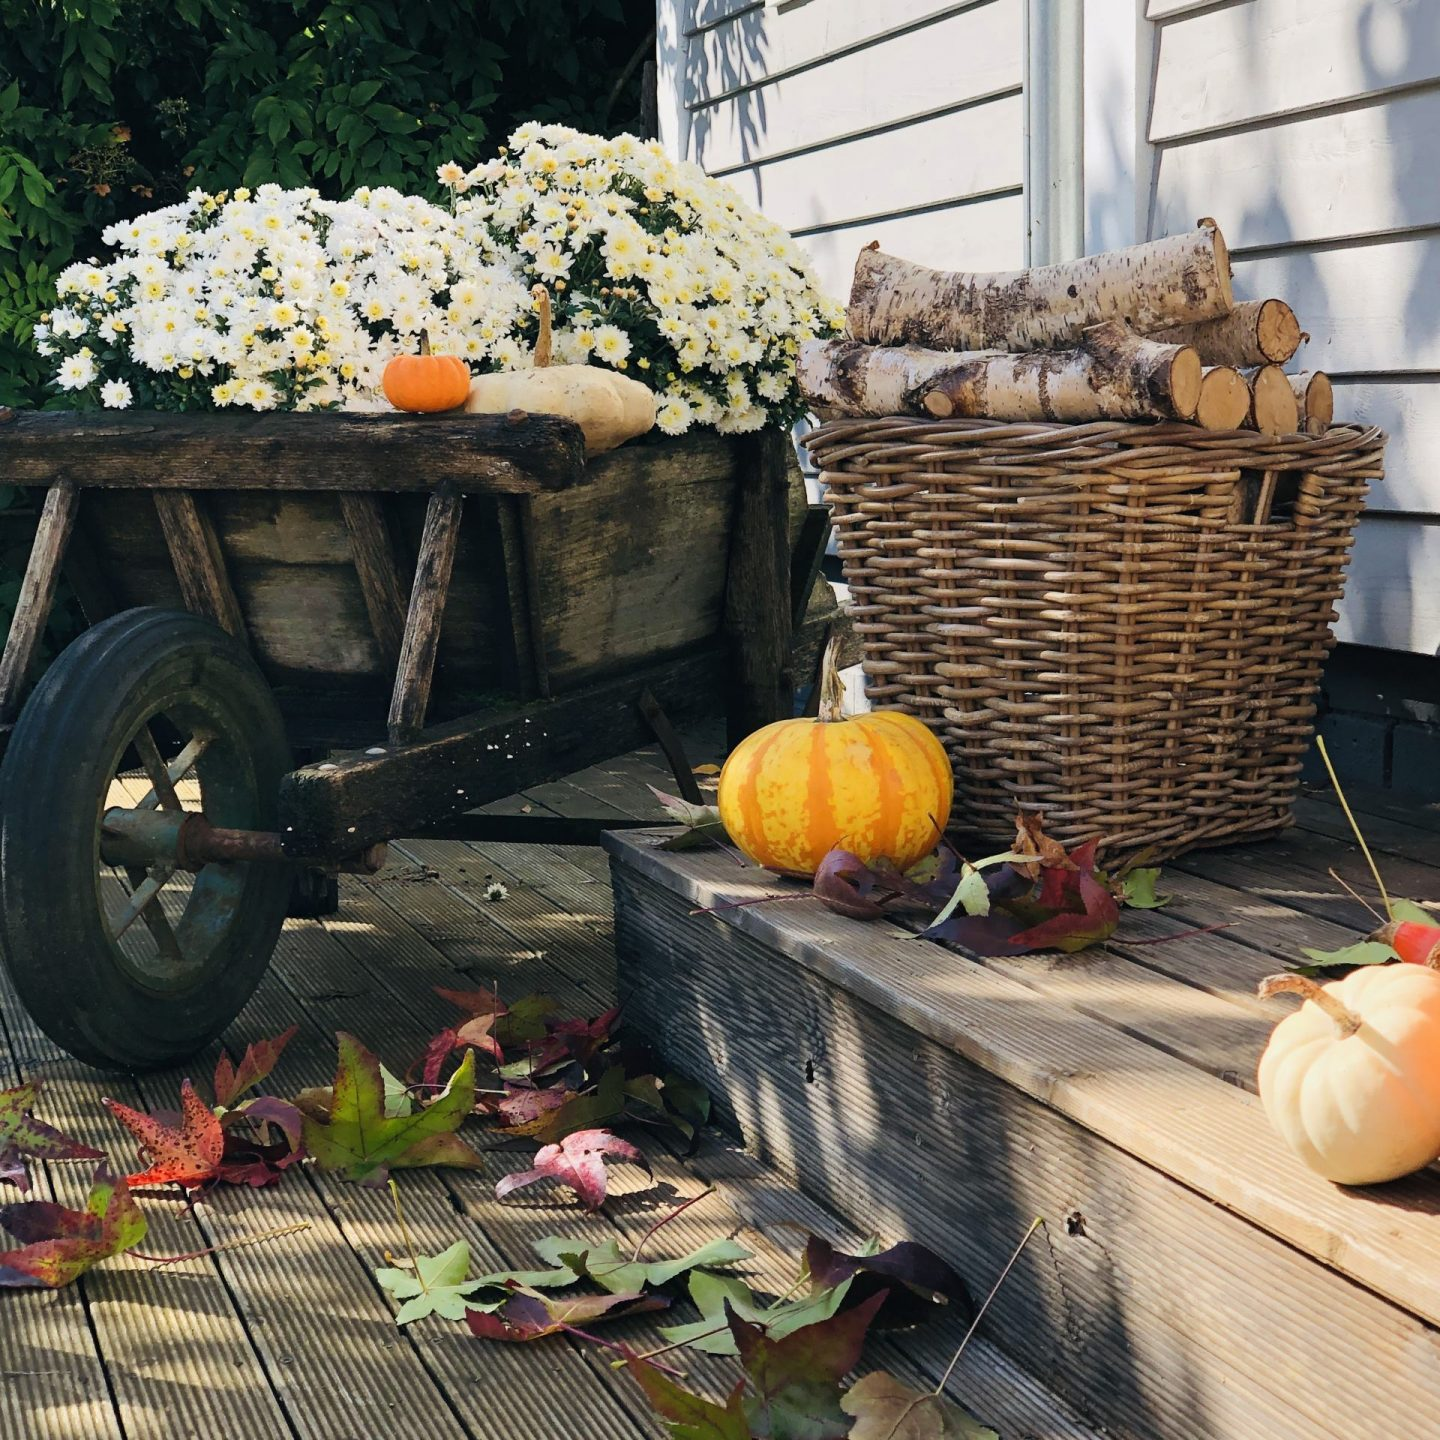 Wheelbarrow with asters and pumpkins.